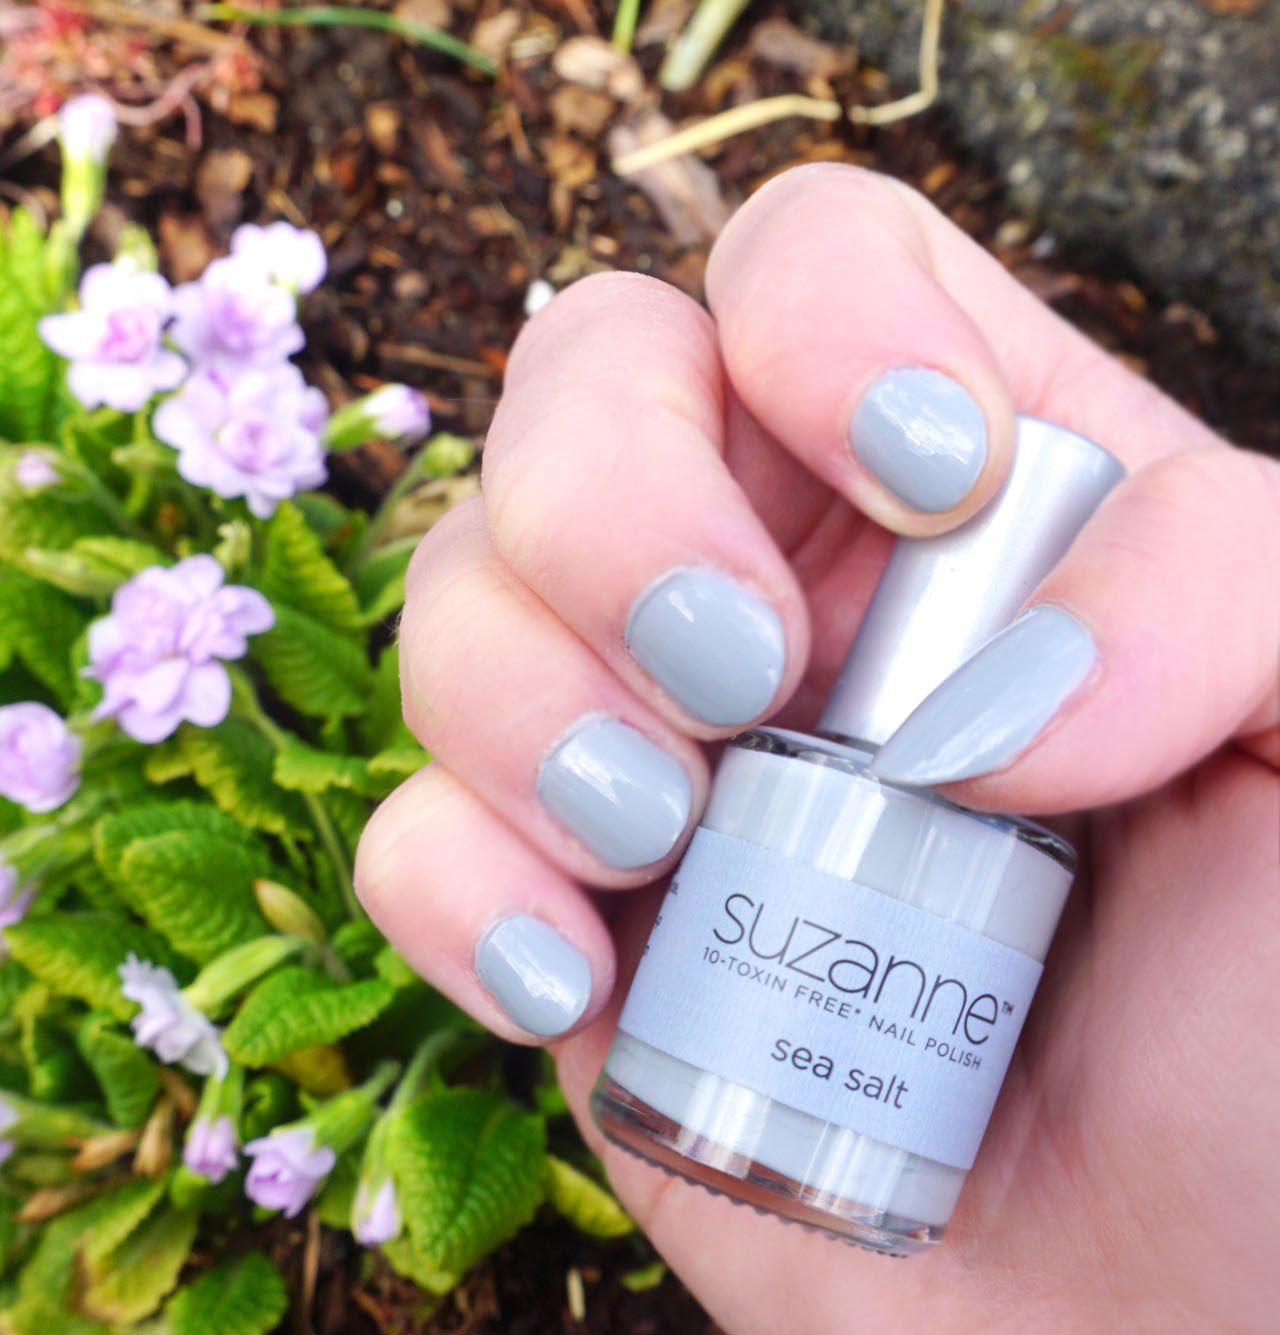 98a8144fda7 ... 10-toxin free nail polish available. Sea Salt is a dreamy muted pastel  greyed baby blue. Two coats gives completely opaque richly pigmented color.